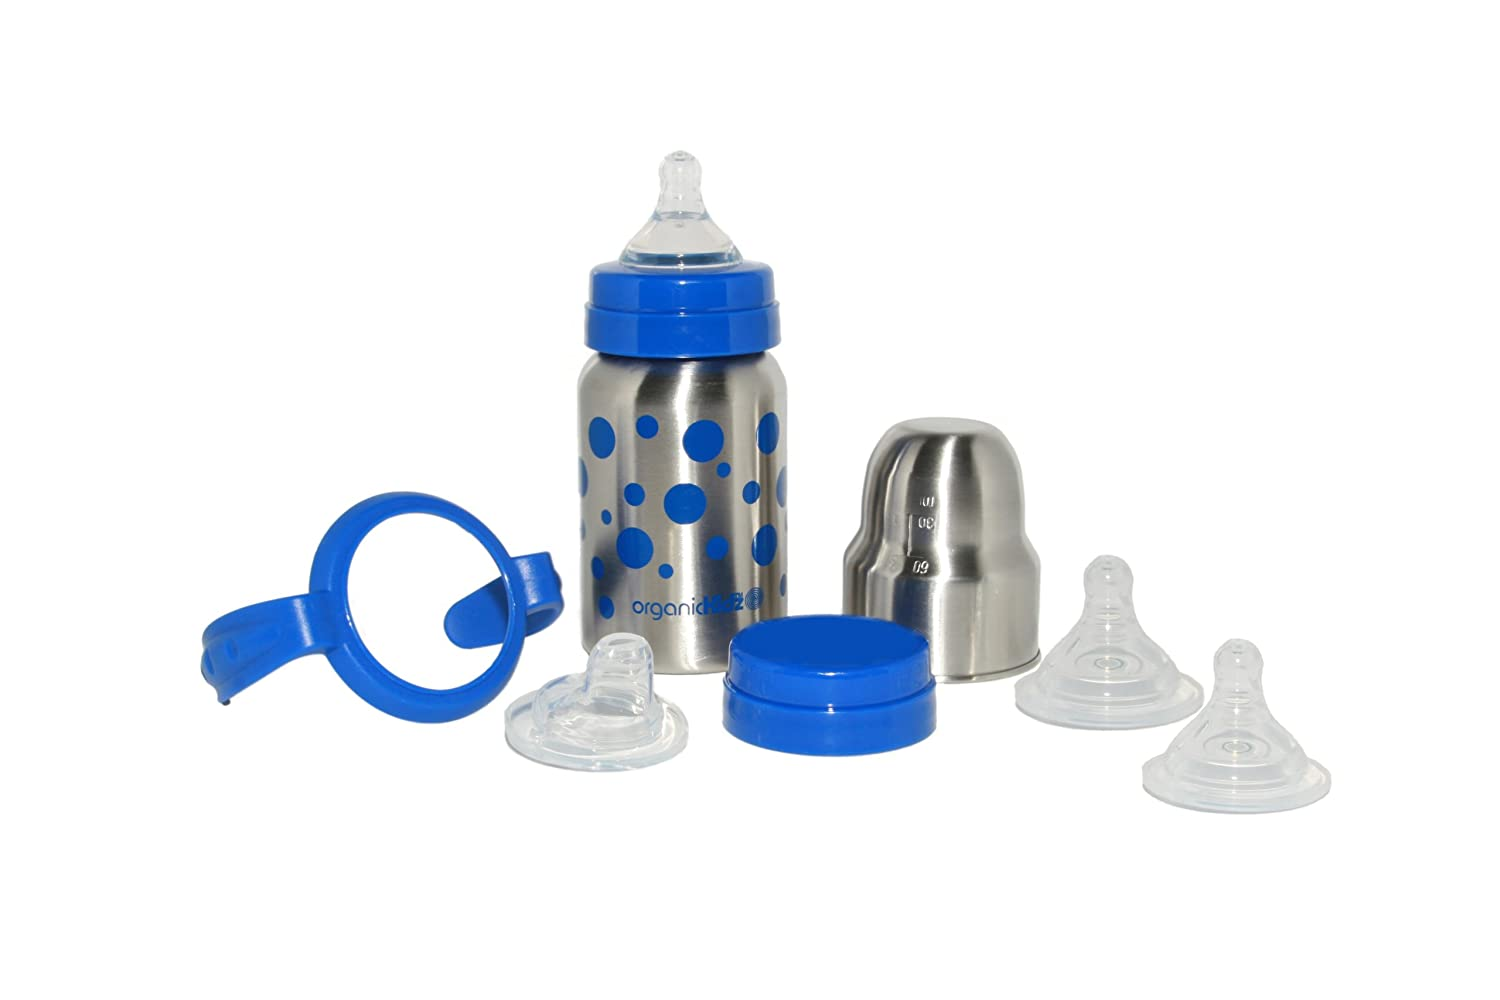 organicKidz Baby Grows Up All in One Stainless Steel Baby Bottle, Sippy Cup, Water Bottle 724